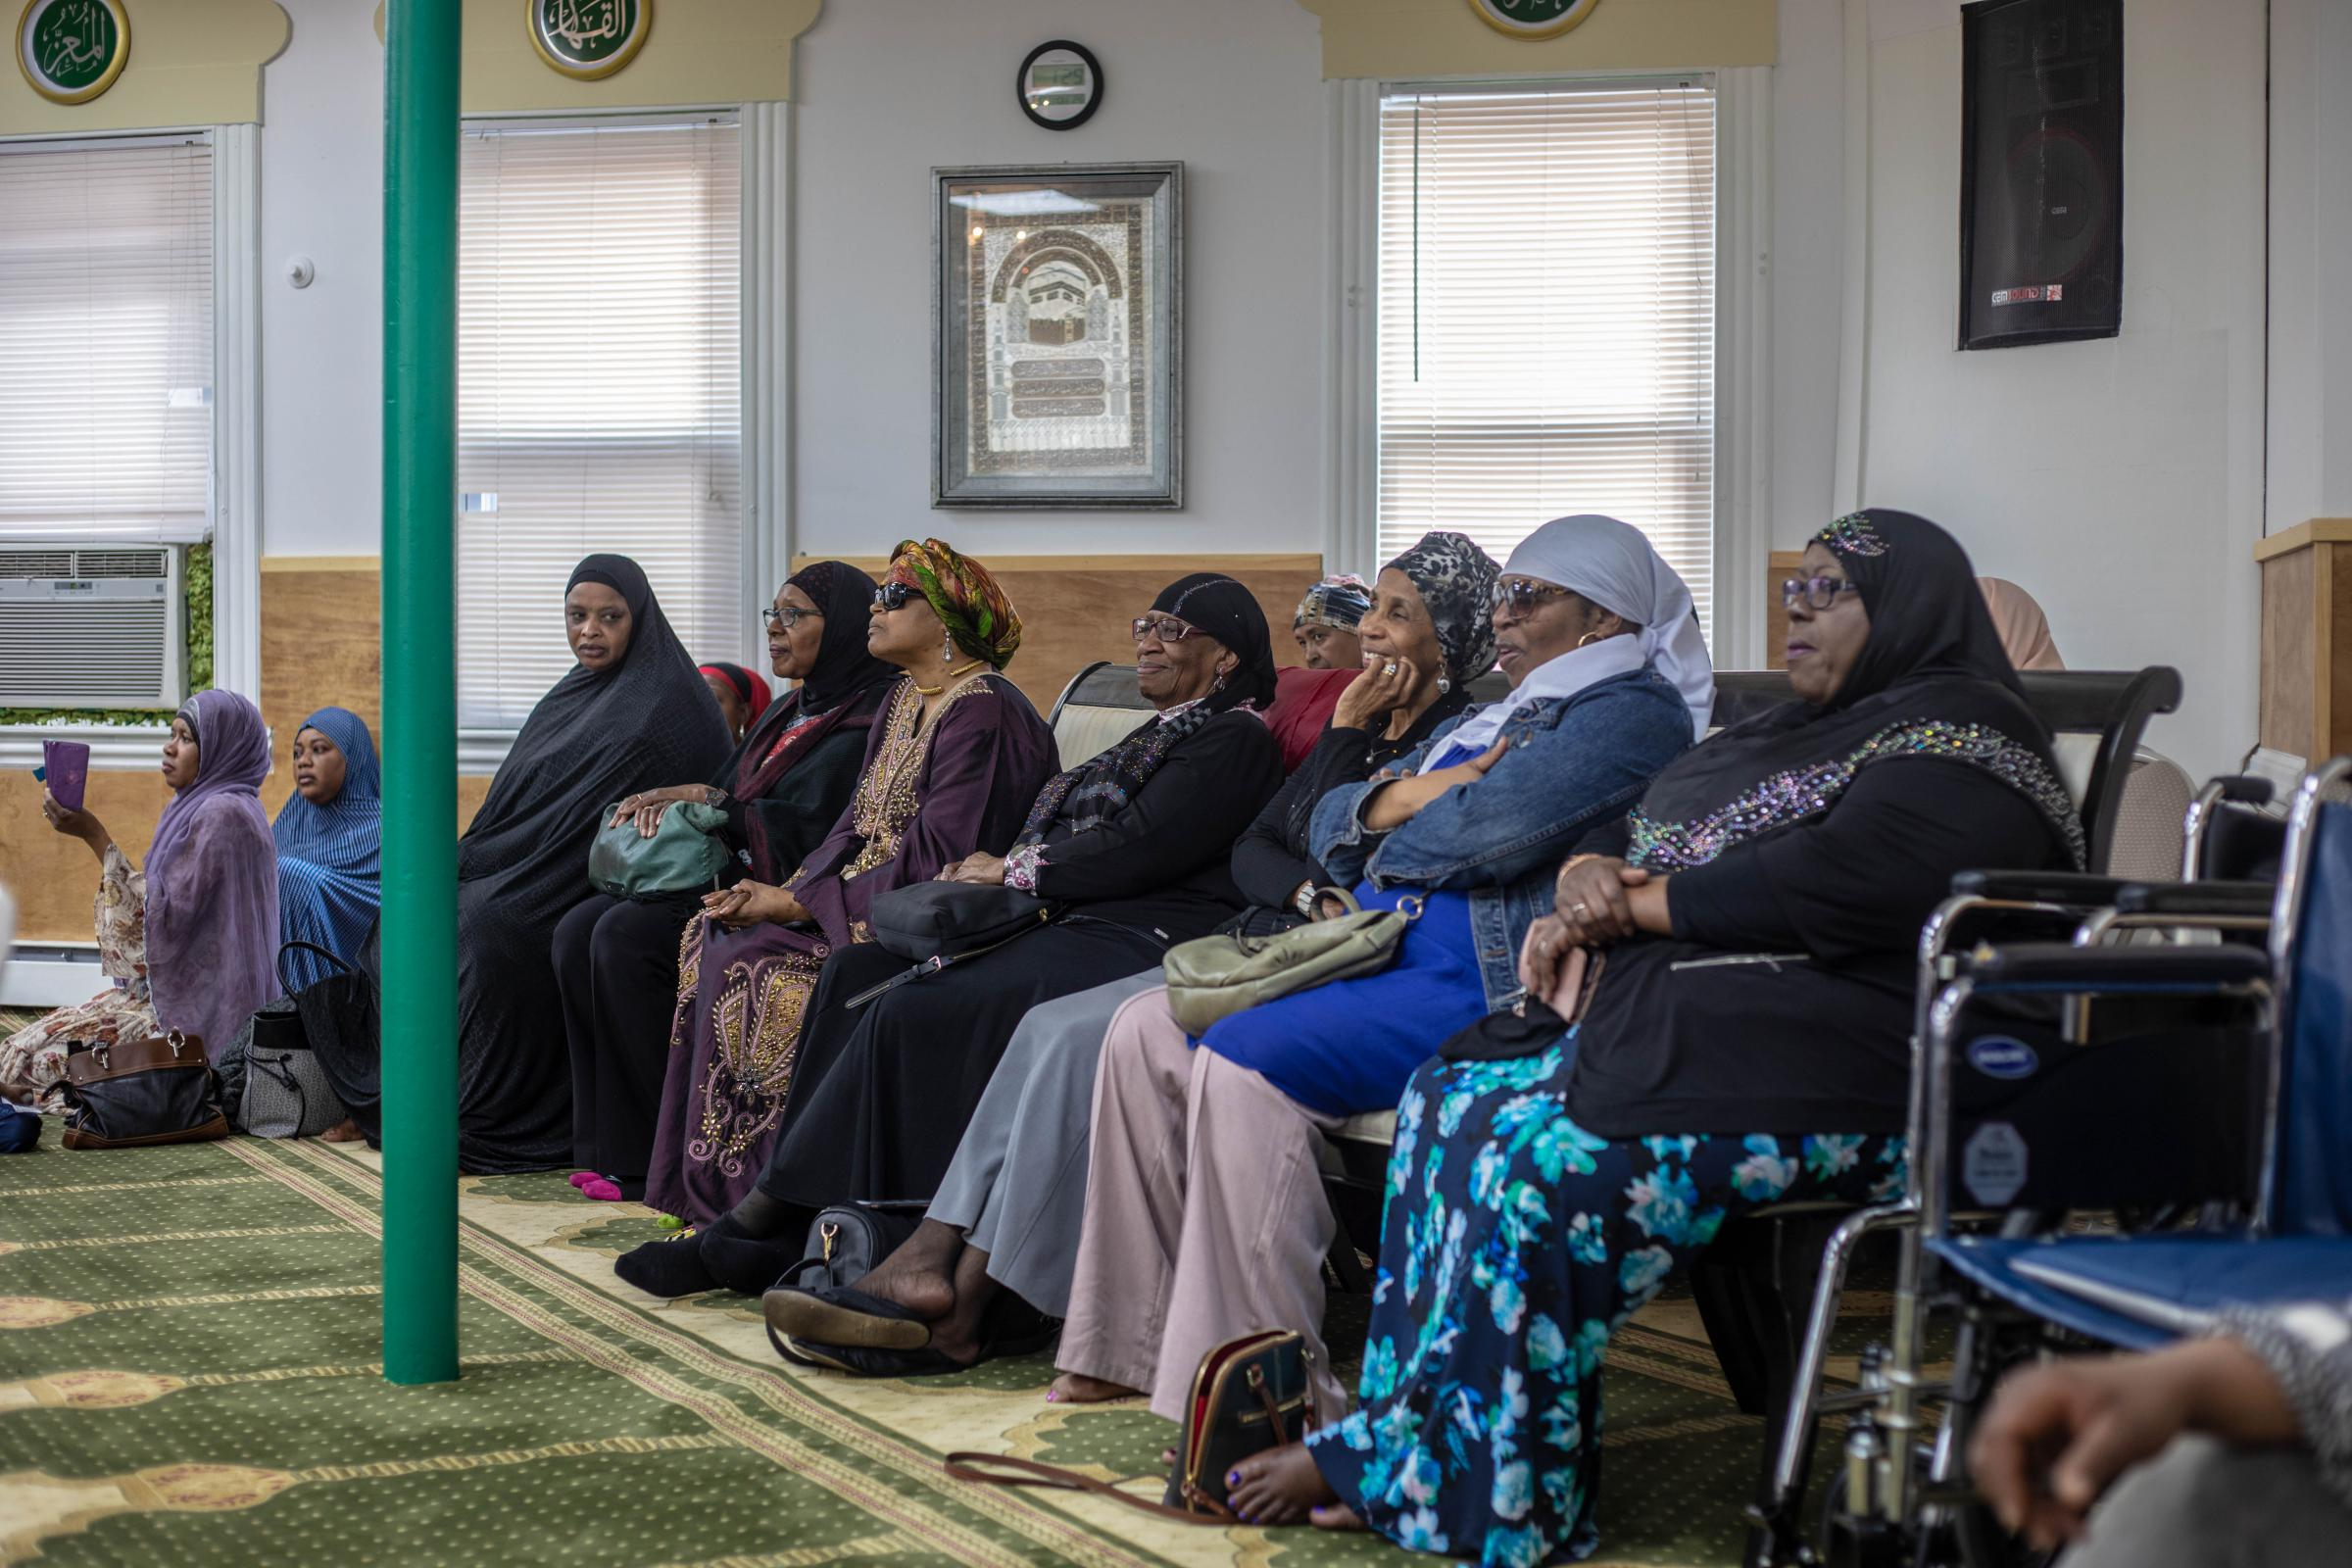 Members of the Muhammad Islamic Center of Greater Hartford listen during the press conference.